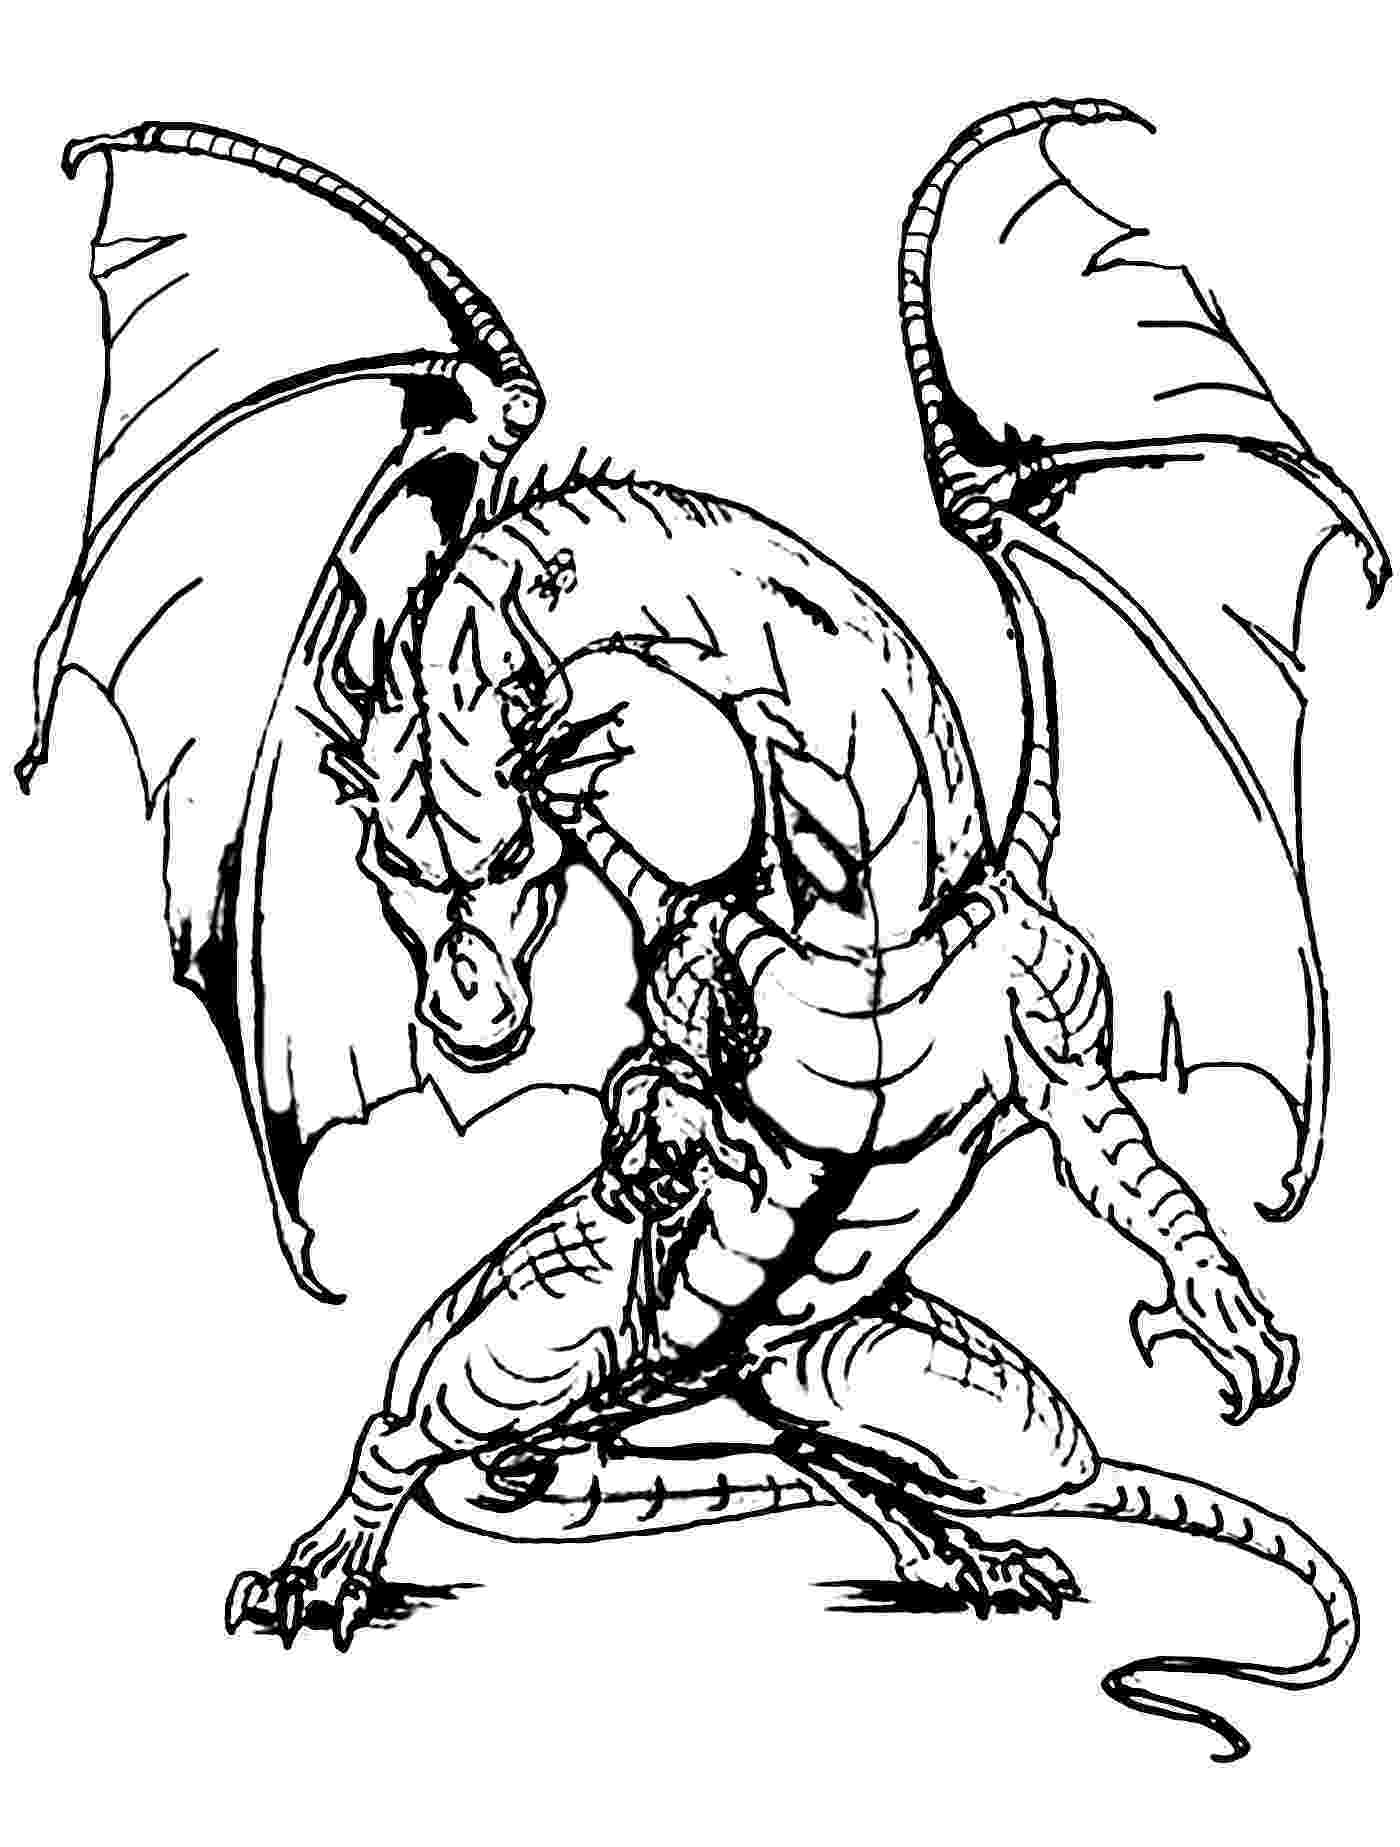 coloring page dragon cute dragon and bird coloring page free printable page coloring dragon